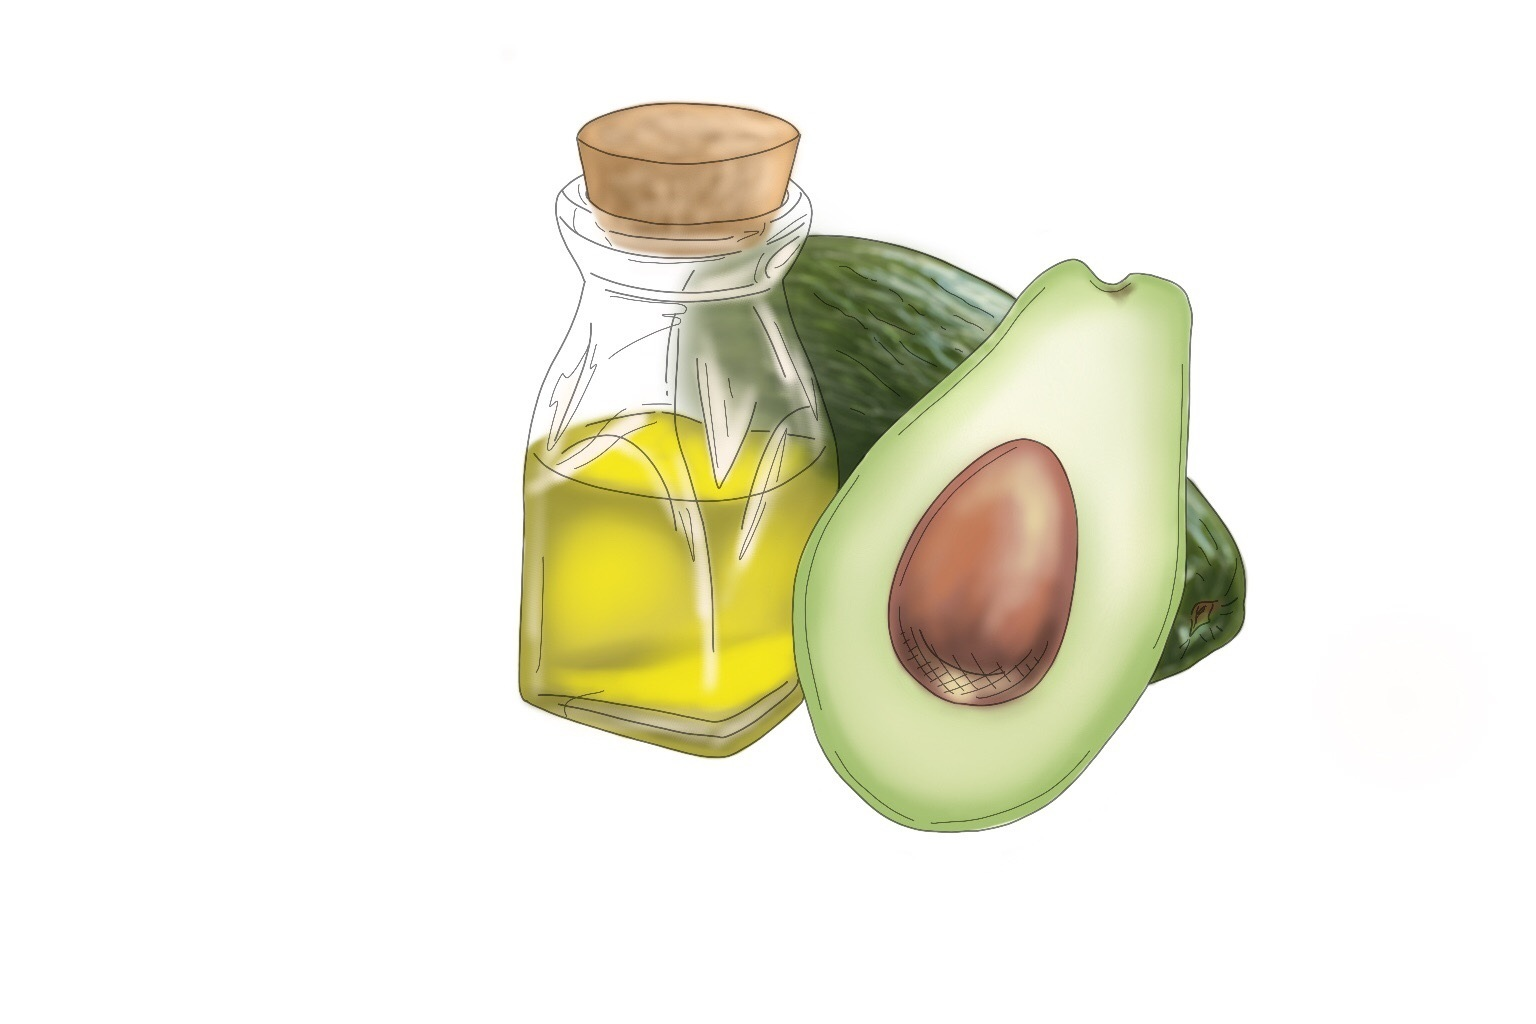 Avocado Oil - A natural moisturizing ingredient, derived from the seed of the avocado. Rich in vitamin A, vitamin D, and vitamin E, as well as essential fatty acids that all help to moisturize, heal, and protect your skin from damage. Avocado oil helps to fight off bacteria and has properties that help protect against sun damage and evens out the skin tone. Avocado oil easily absorbs into your skin, penetrating deeper than most oils, to leave your skin feeling hydrated without feeling too greasy. This is why when you wash off the Clay Mask, your skin actually feels hydrated.